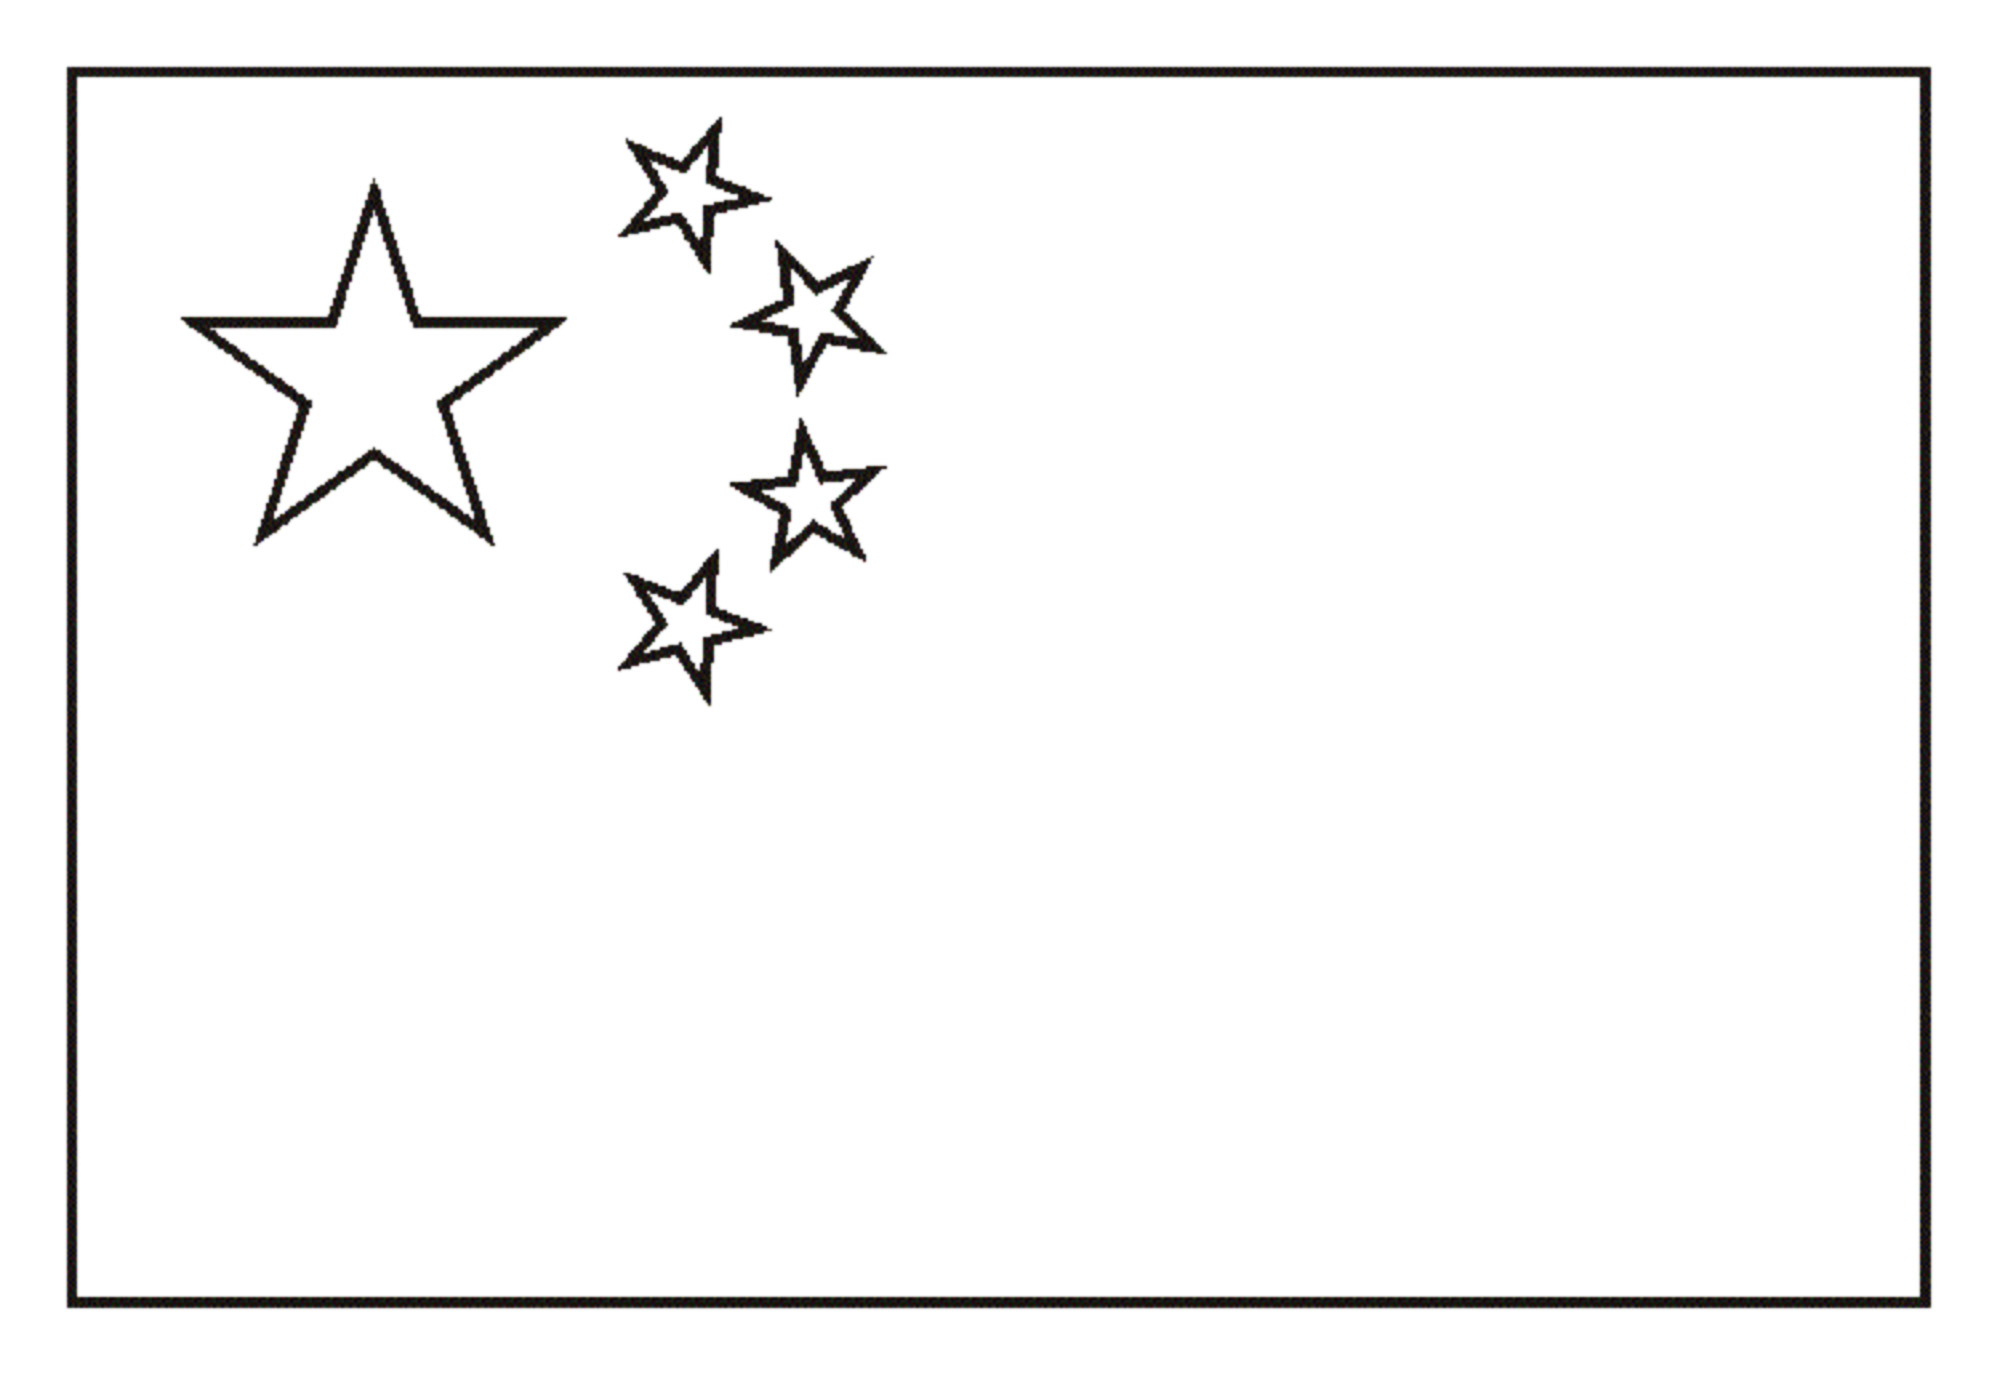 Free Flags coloring page to print and color